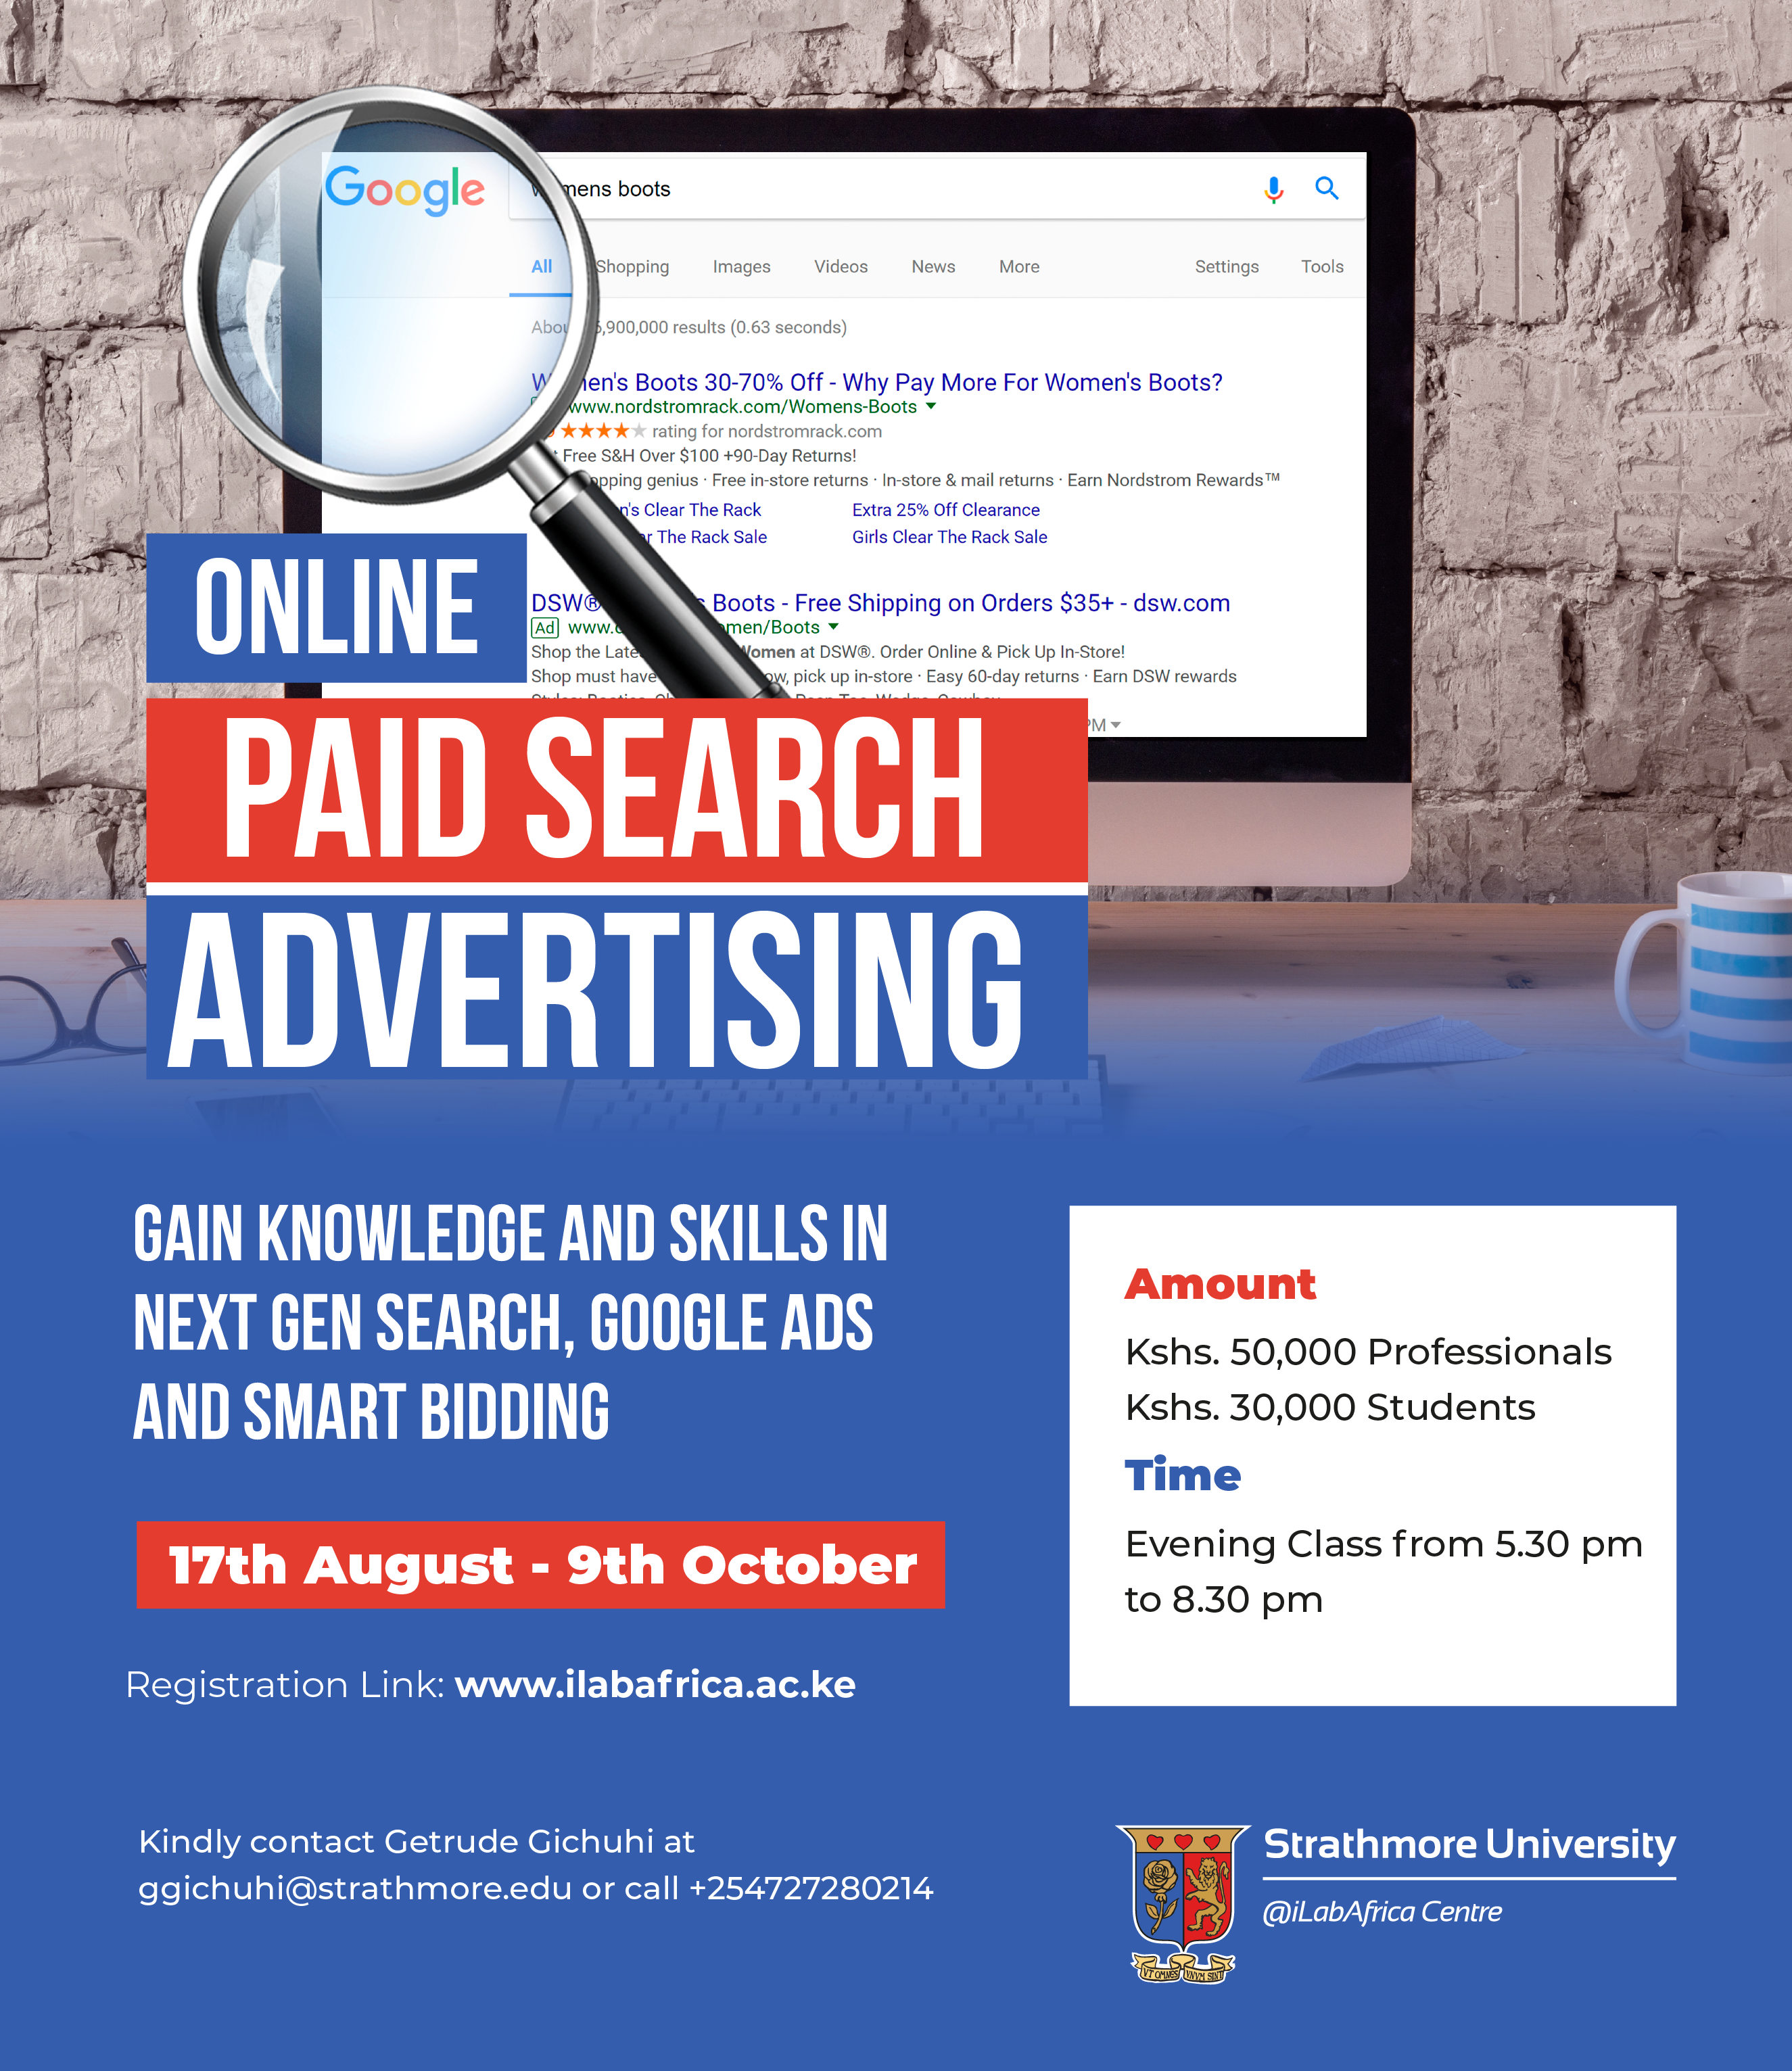 Paid-Search-Advertising-01-1